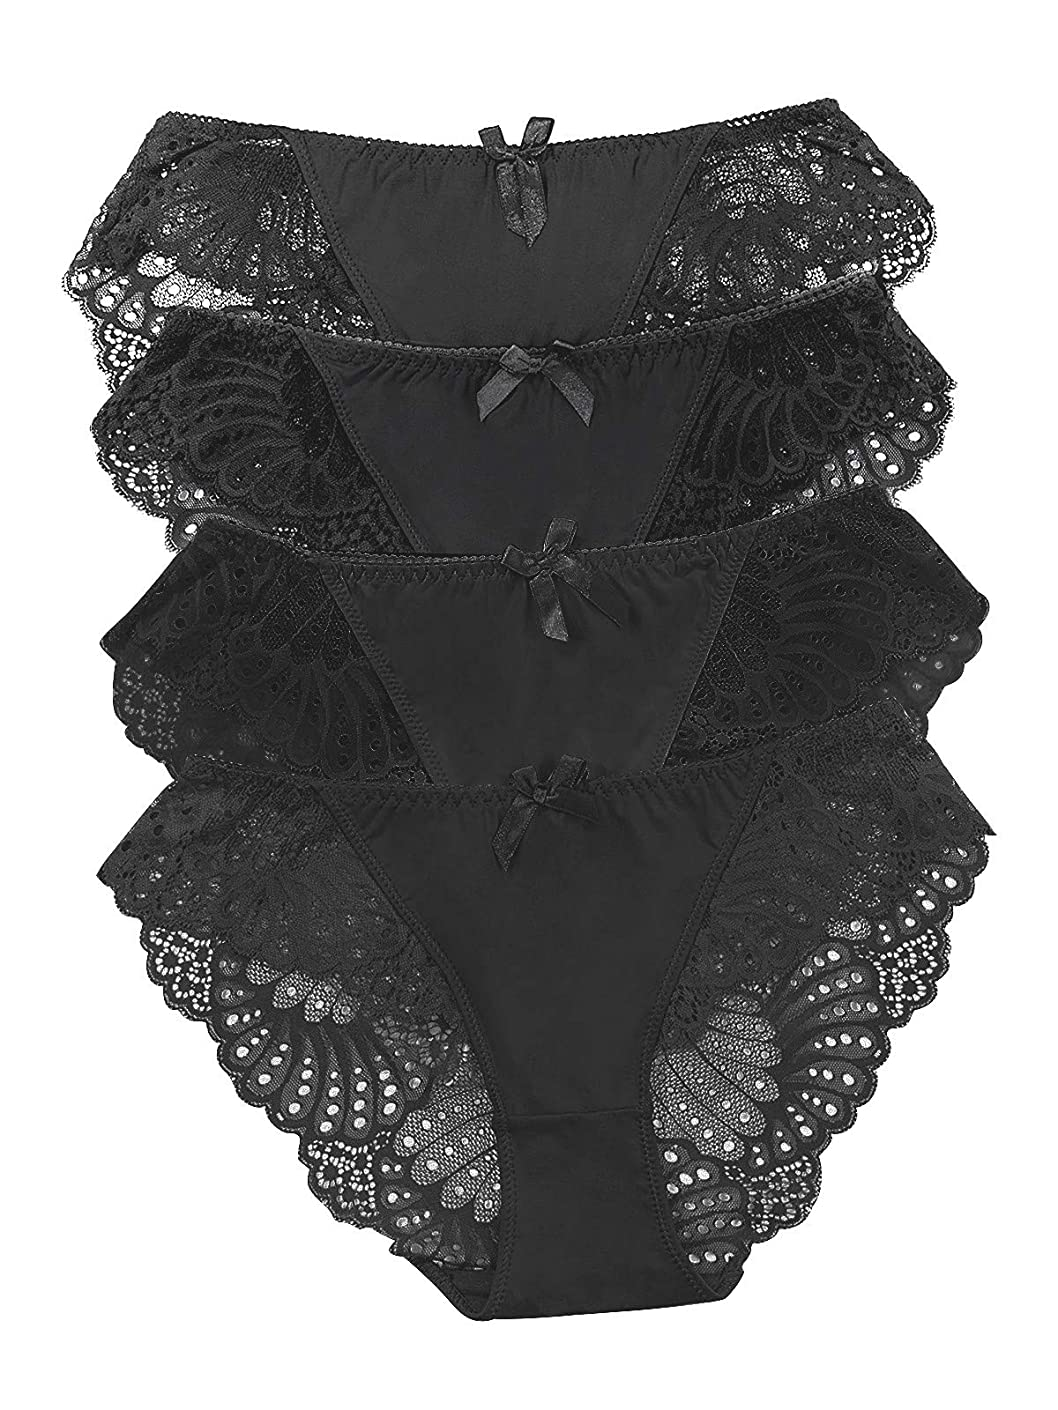 Panties Underwear Hipster Panties Sexy Lace Briefs for Women (4 Pack)